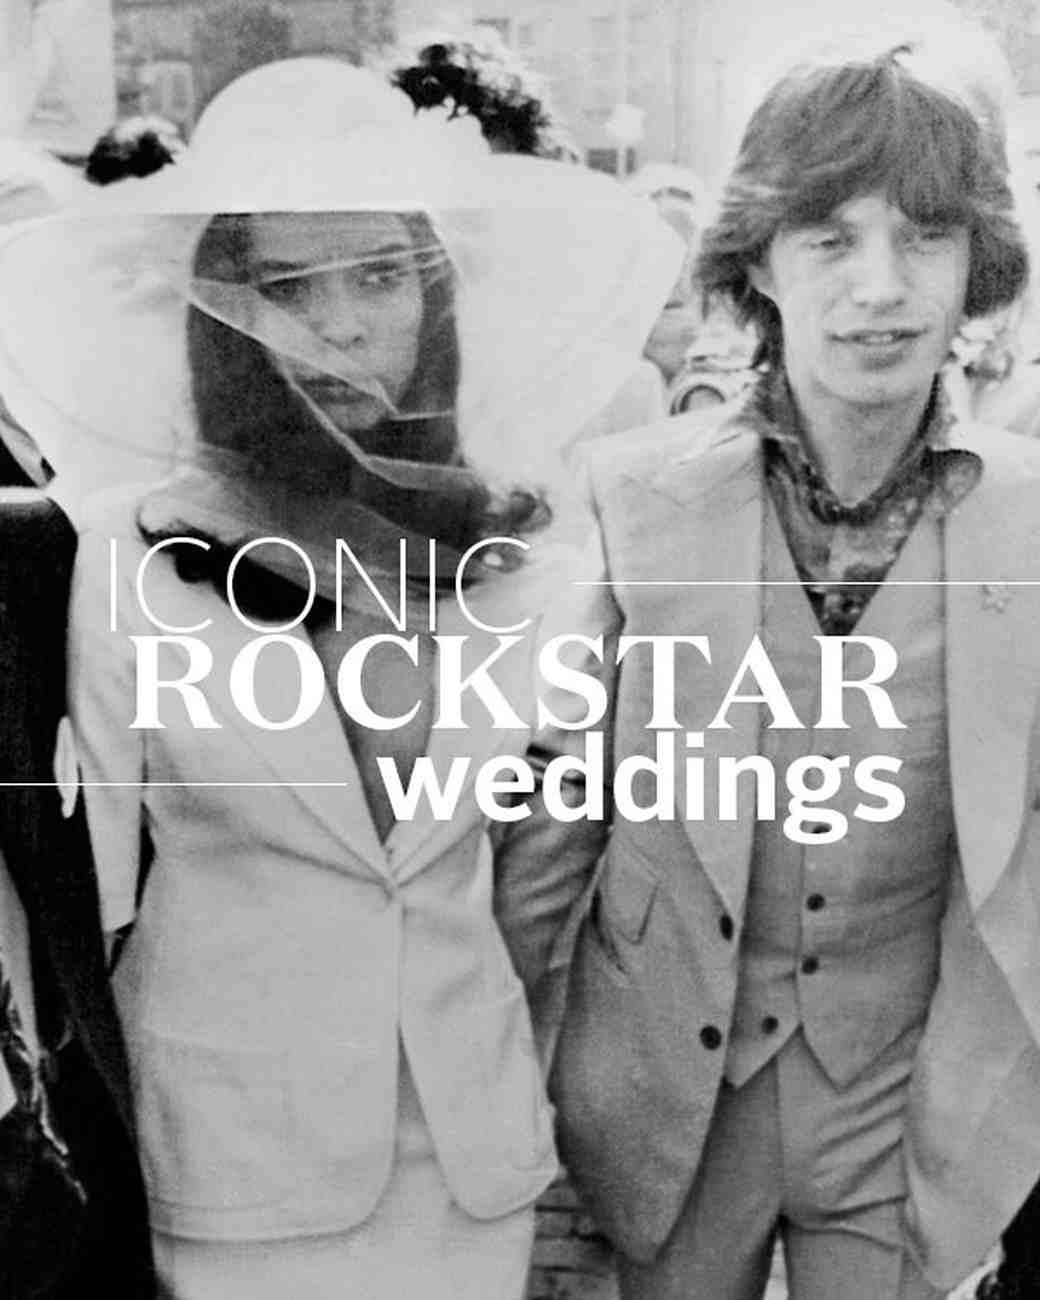 iconic-rockstar-weddings-lead-new-0716.jpg